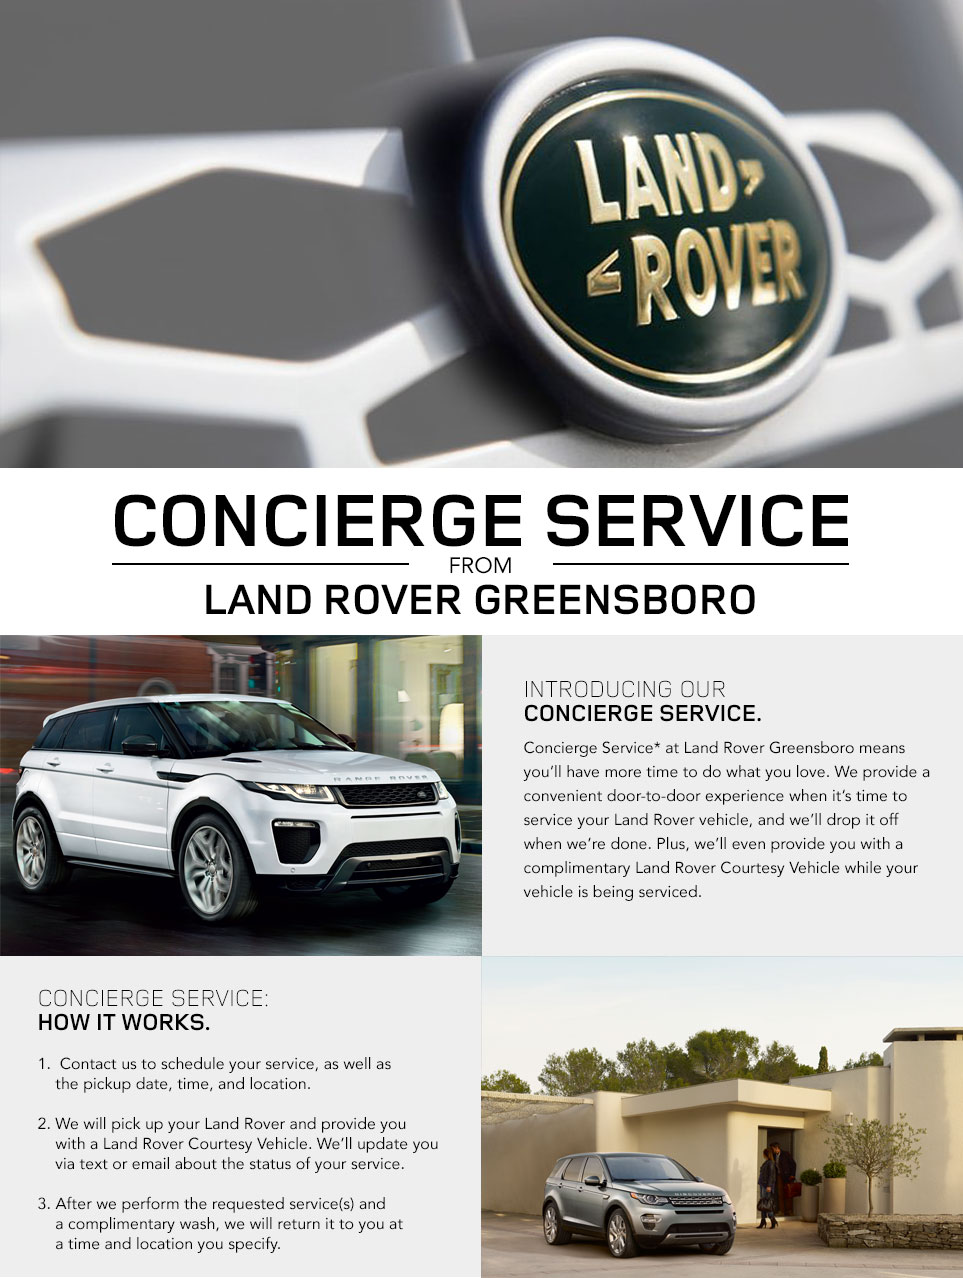 Concierge Service at Land Rover Greensboro